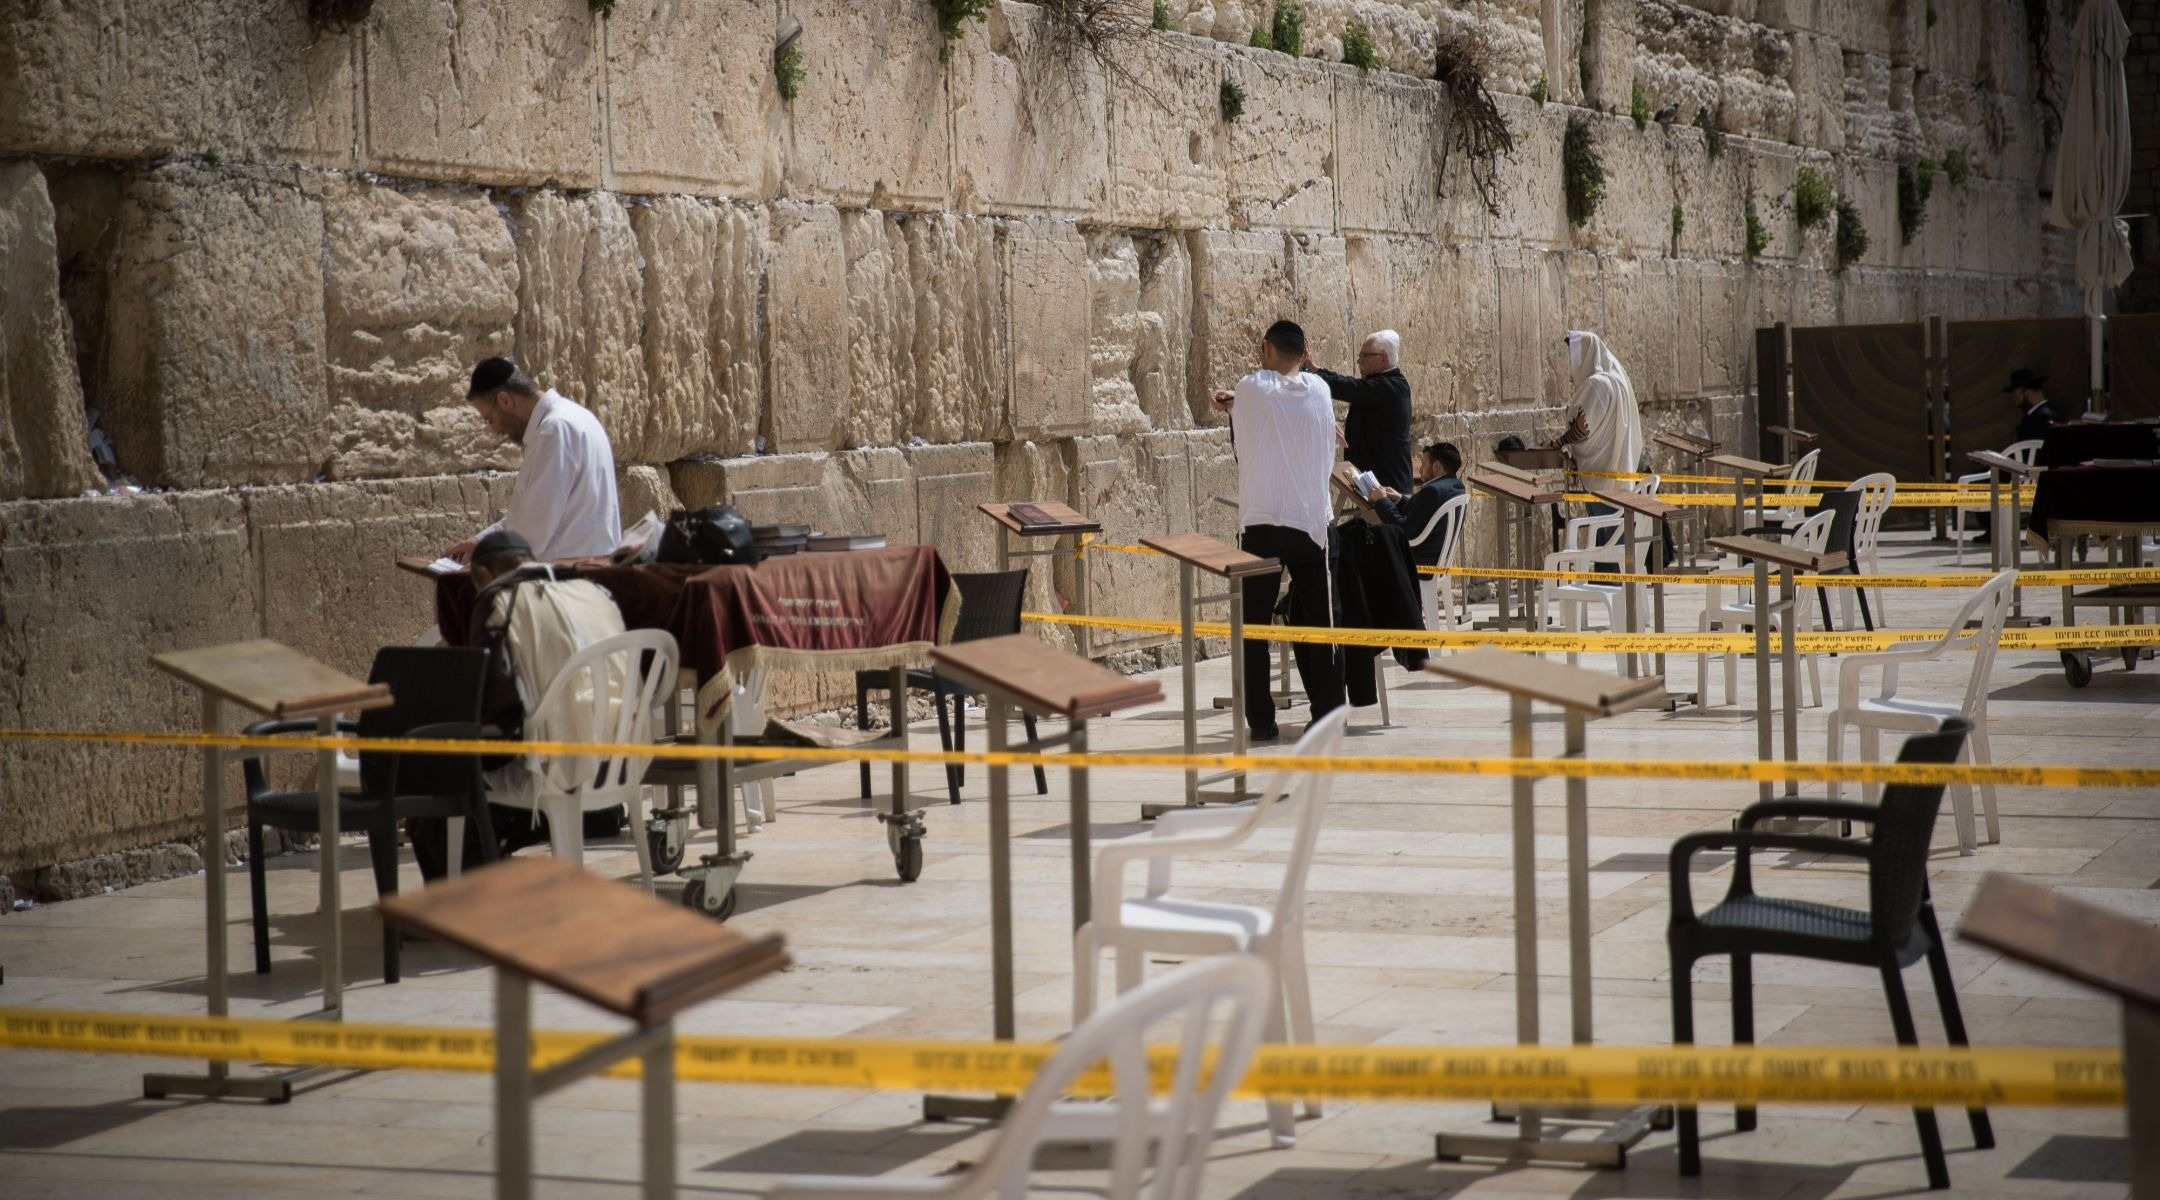 Worshippers at the Western Wall pray in enclosed areas meant for 10 people at a time in order to prevent the spread of coronavirus, March 15, 2020. (Photo/JTA-Yonatan Sindel-Flash90)